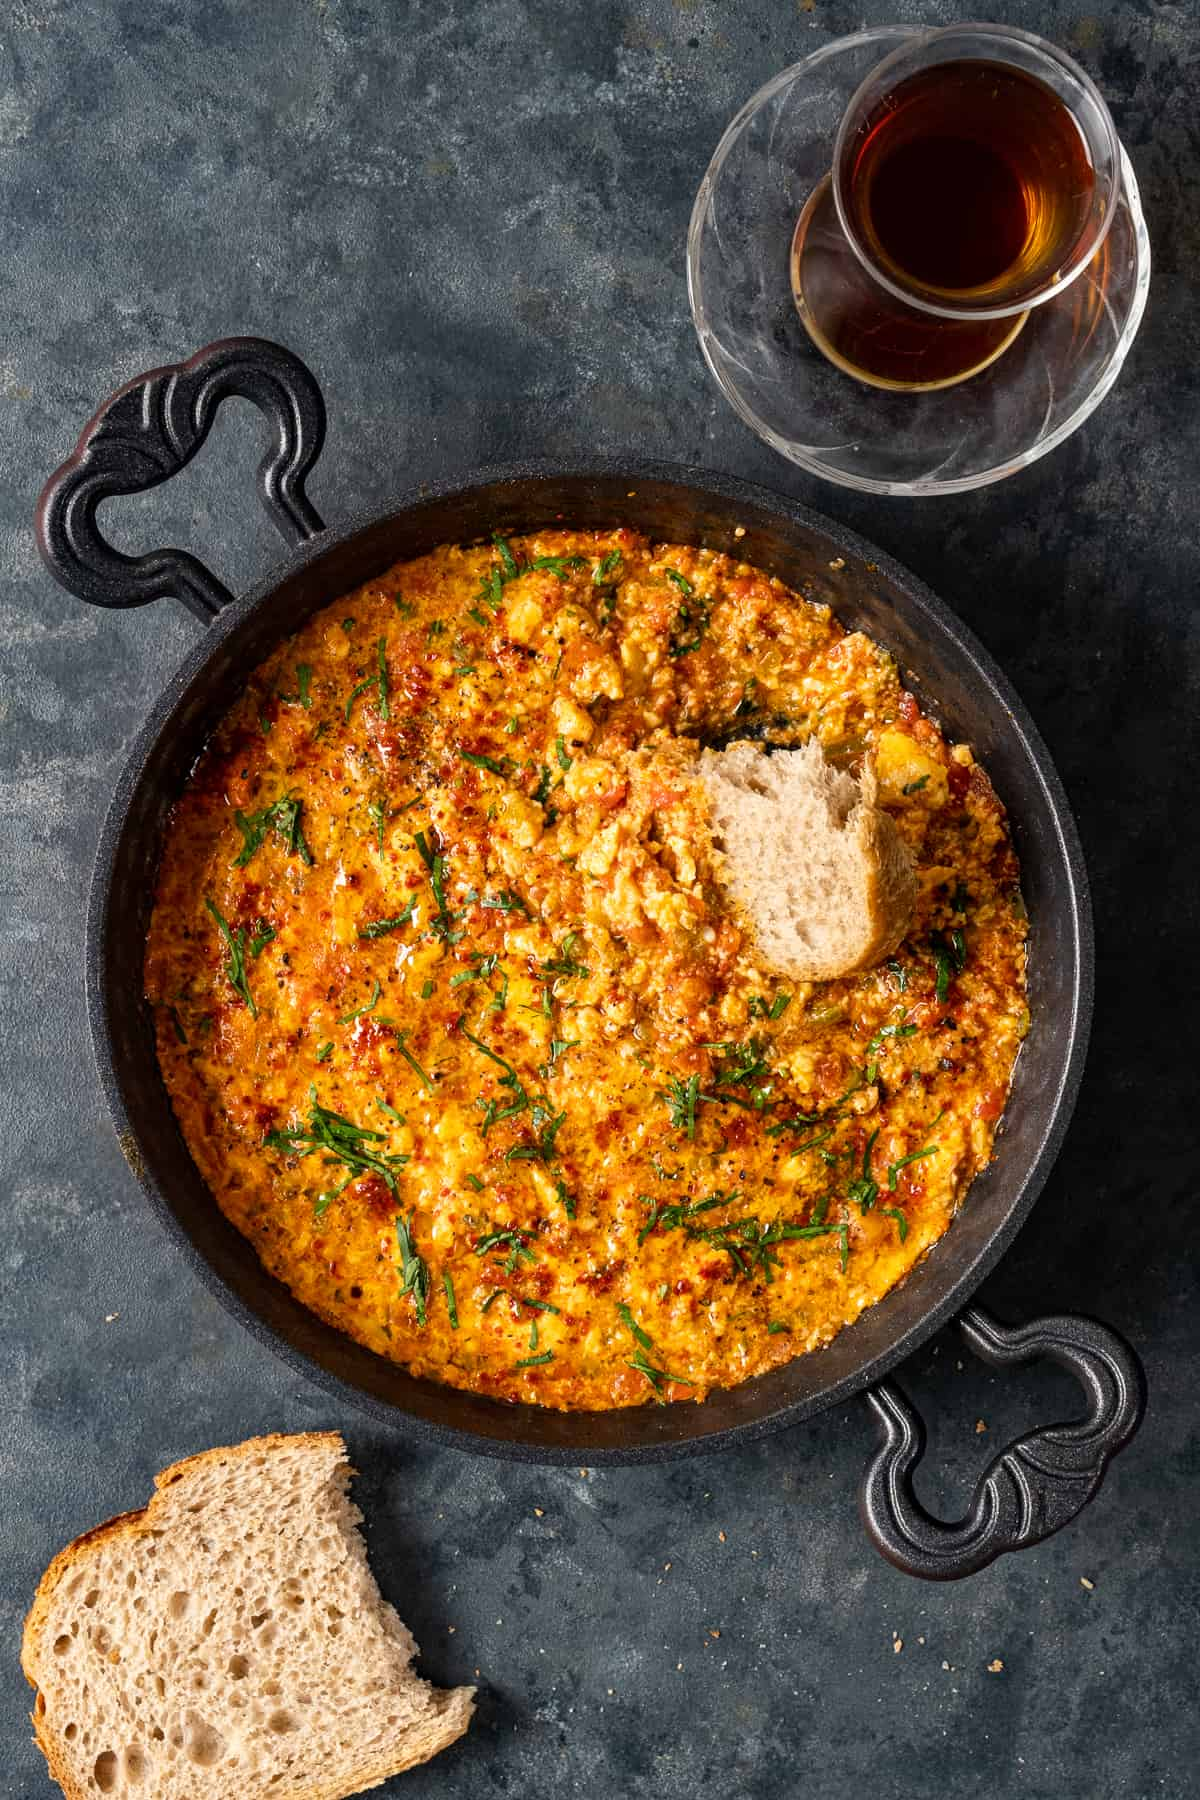 Scrambled eggs with tomatoes and peppers aka menemen in a pan accompanied by a glass of Turkish tea and bread slices.